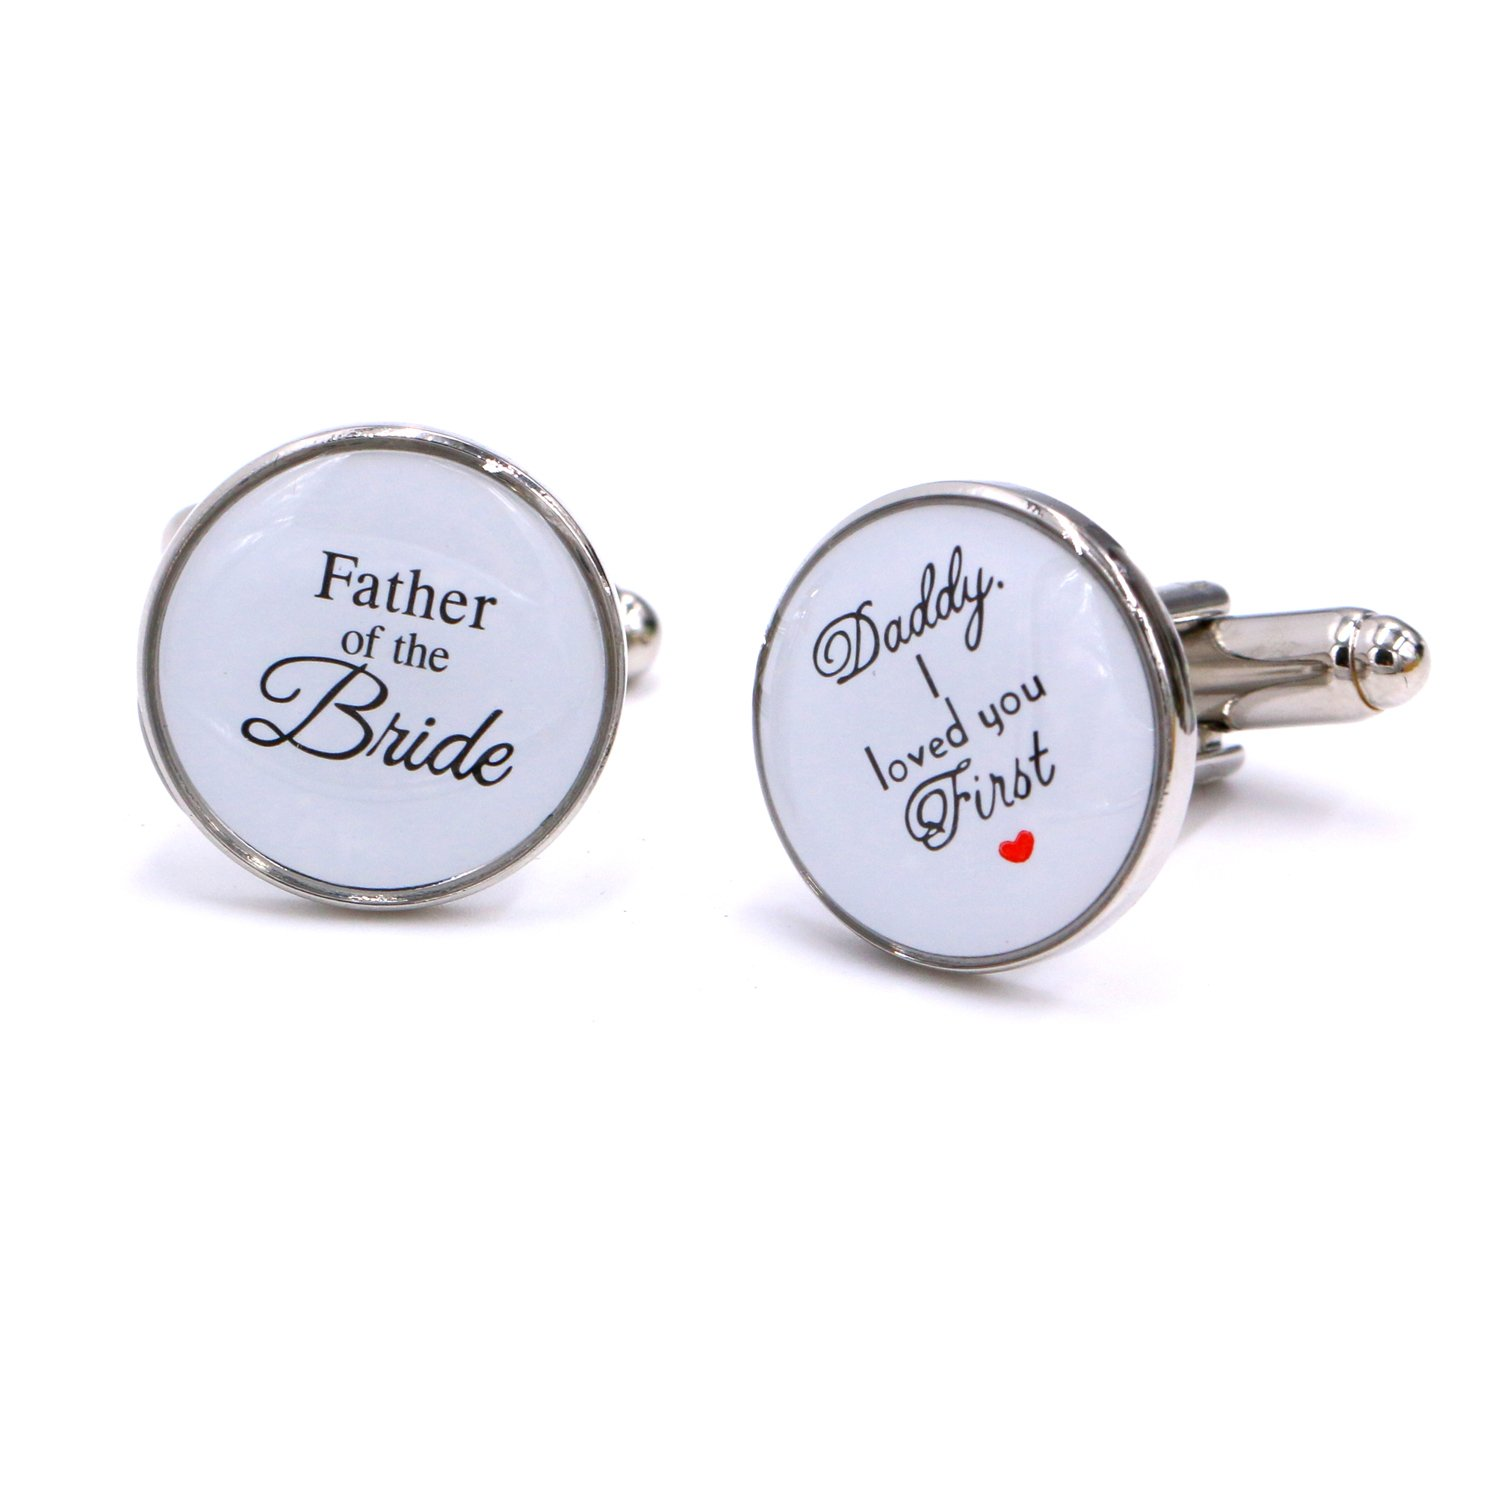 LParkin Wedding Gift Cuff Links -Father of the Bride ; Daddy I love you first (White) by LParkin (Image #1)